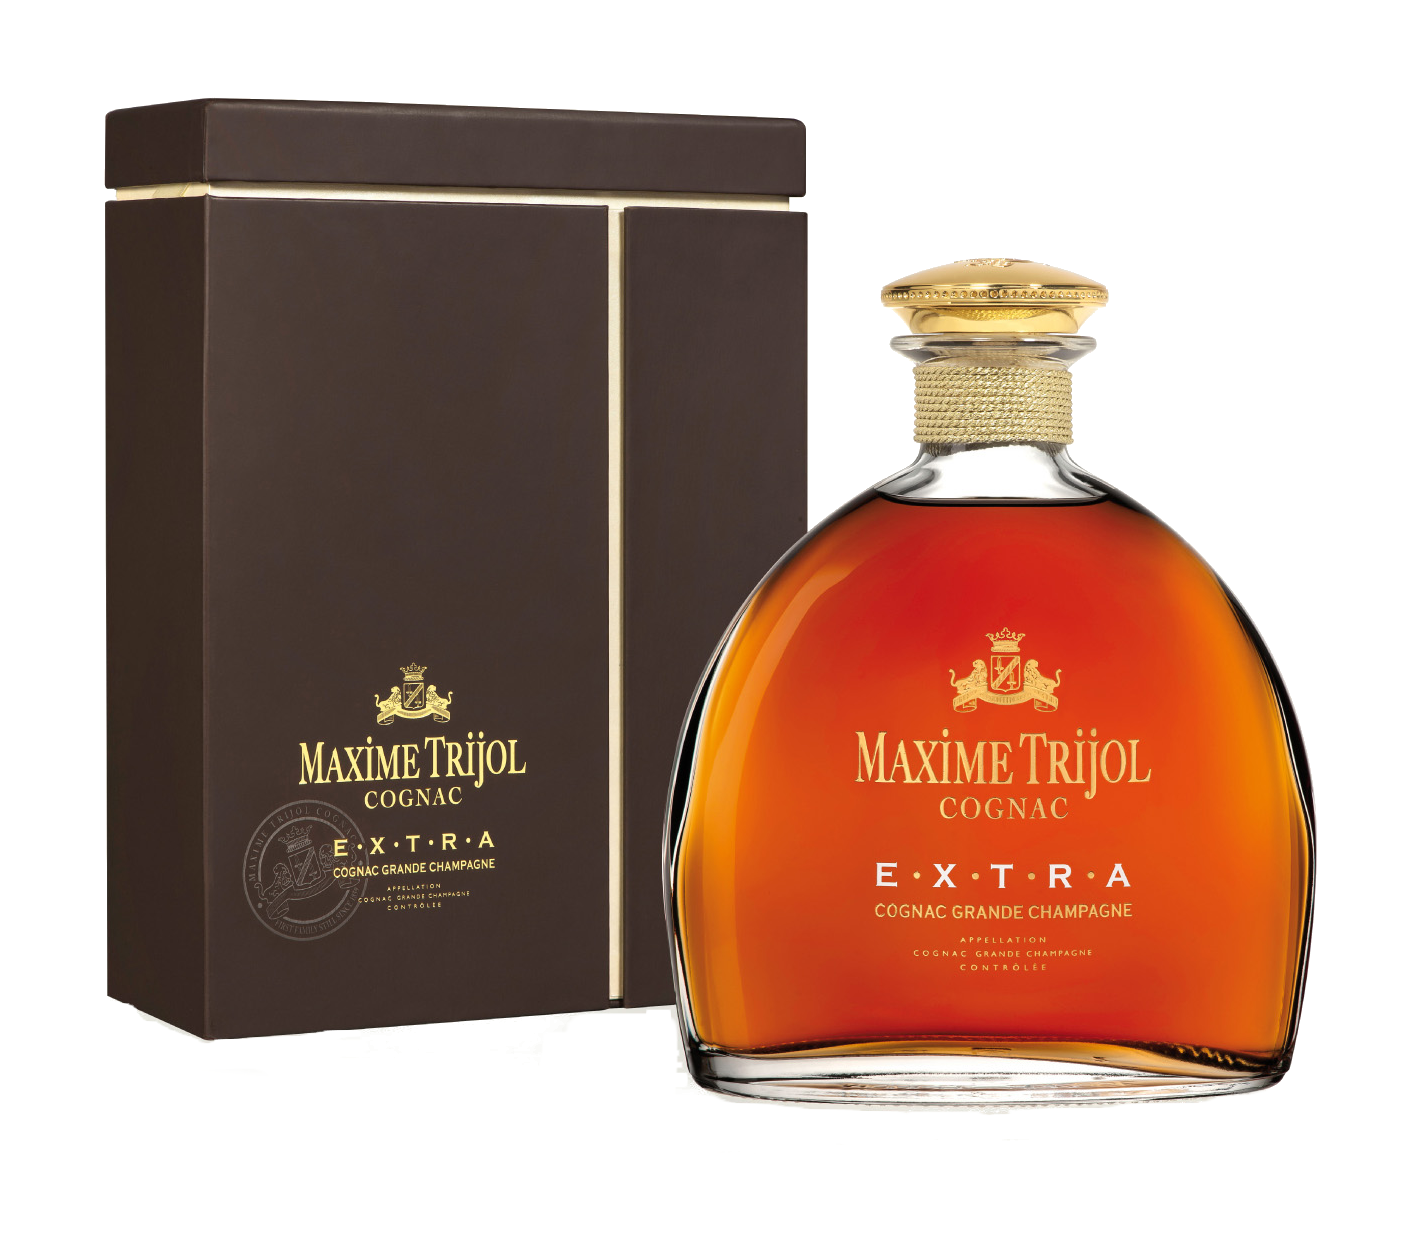 MAXIME TRIJOL GRAND CHAMPAGNE EXTRA GC